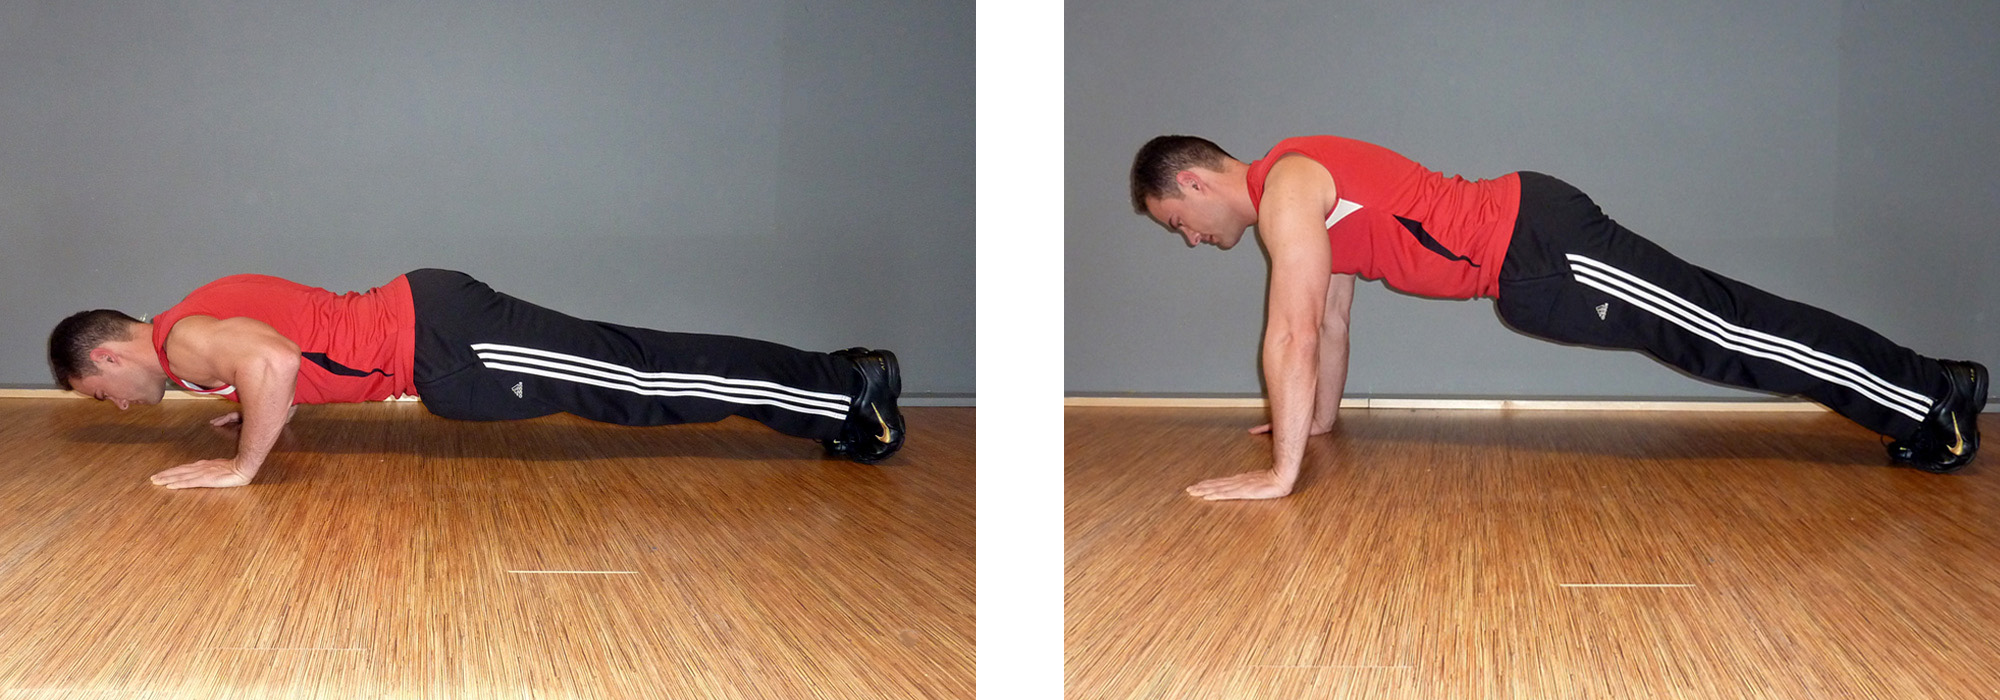 How to pushup